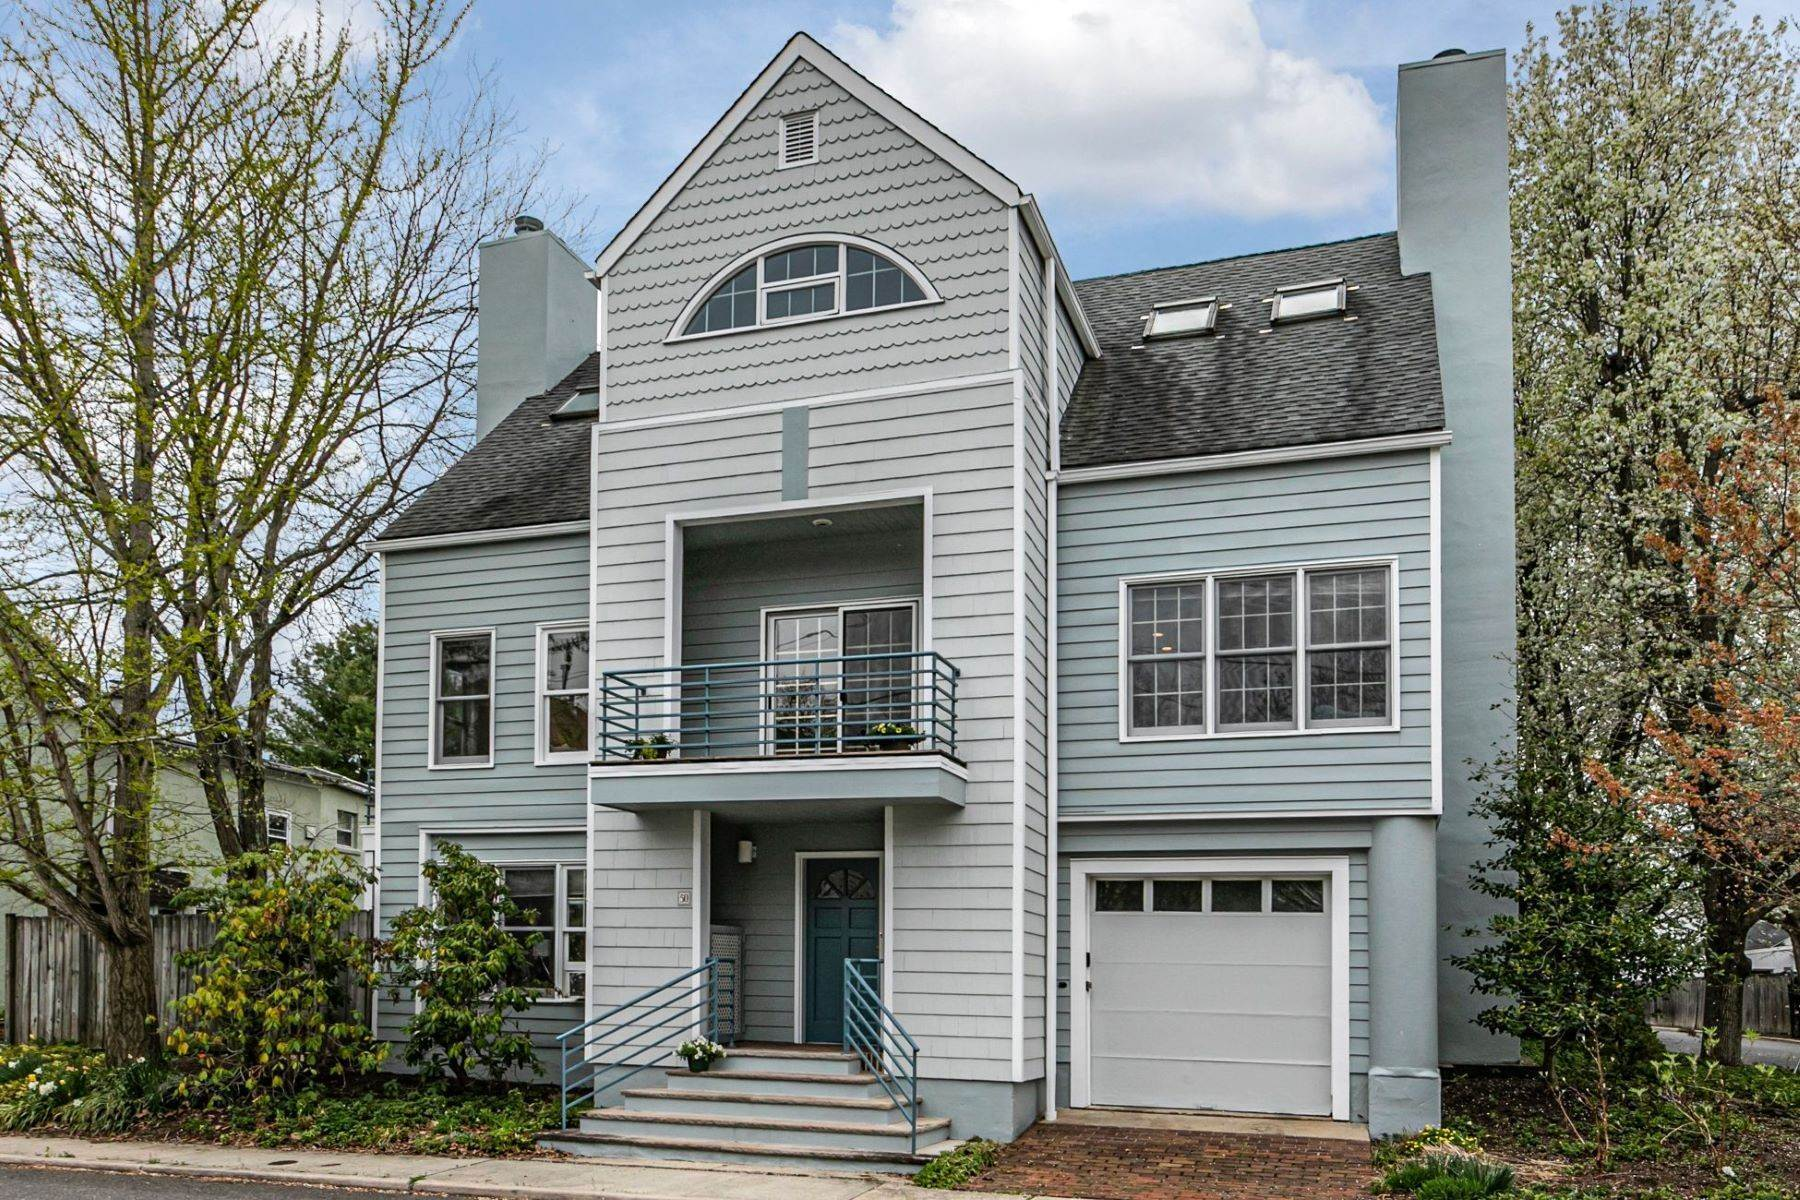 townhouses for Sale at Cool, Contemporary, City-style Retreat 50 Humbert Street, Princeton, New Jersey 08542 United States